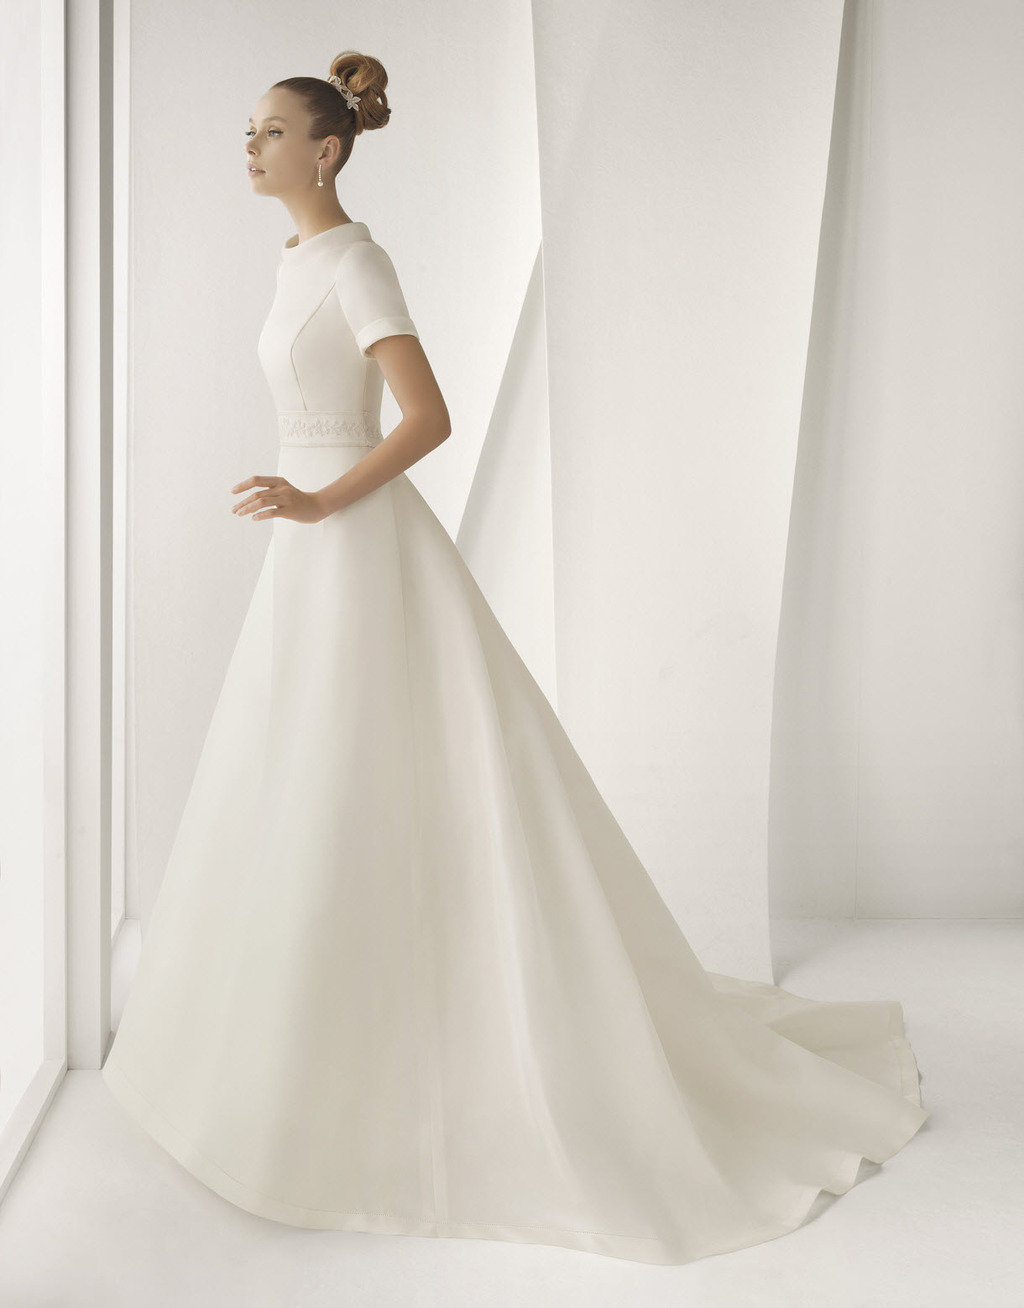 Aixa-spring-2012-wedding-dress-rosa-clara-bridal-gowns-modest-bateau-neck-sleeves.full